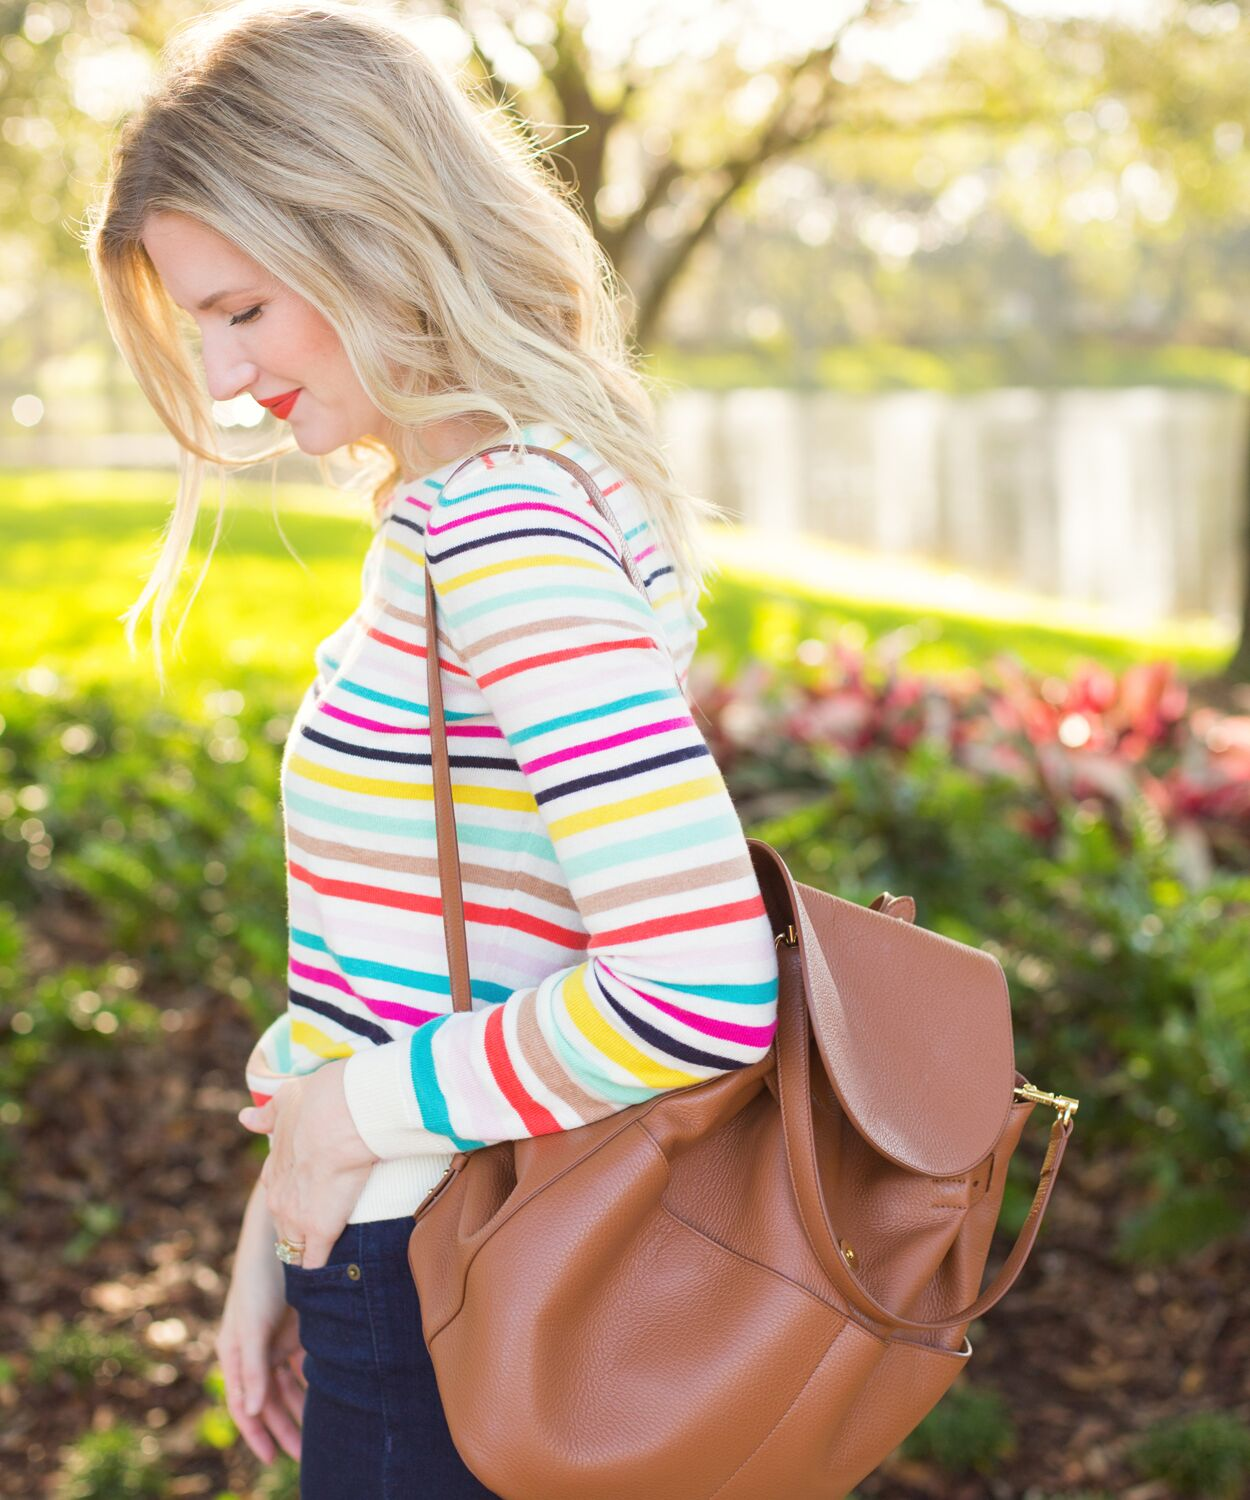 Blogger Ashley Brooke Shares her Favorite Fall Look | www.ashleybrookedesigns.com